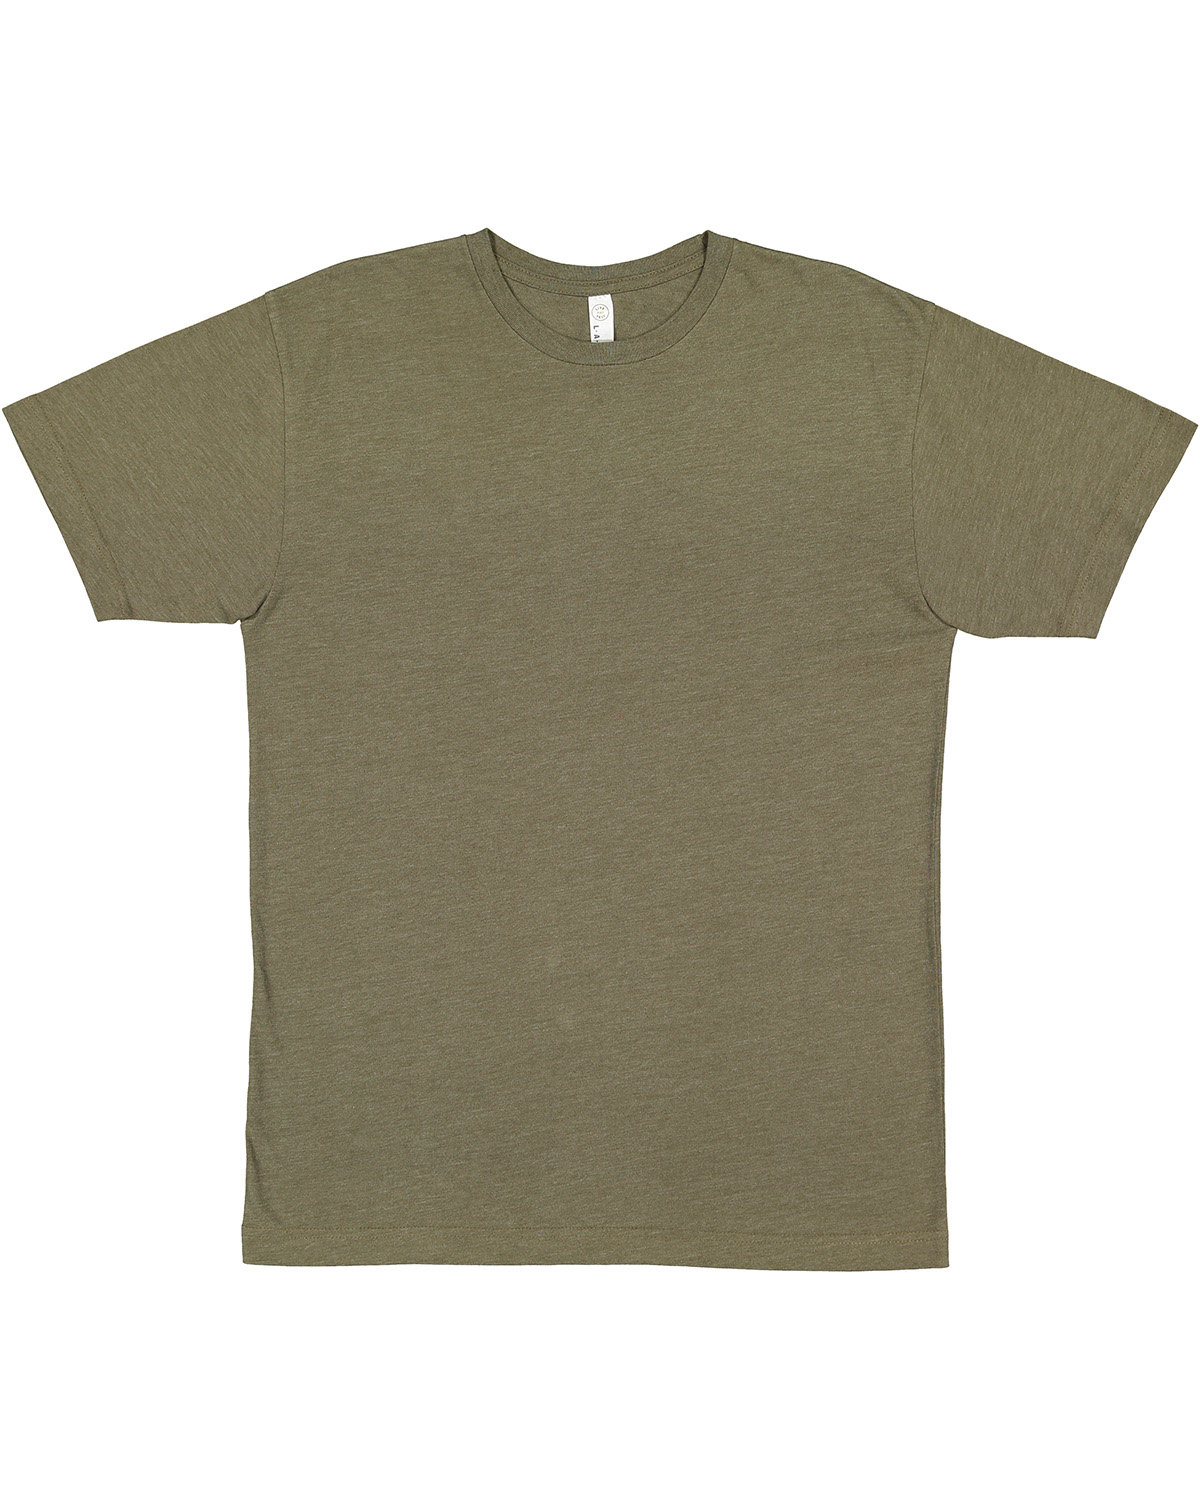 LAT Youth Fine Jersey T-Shirt VNT MILITARY GRN